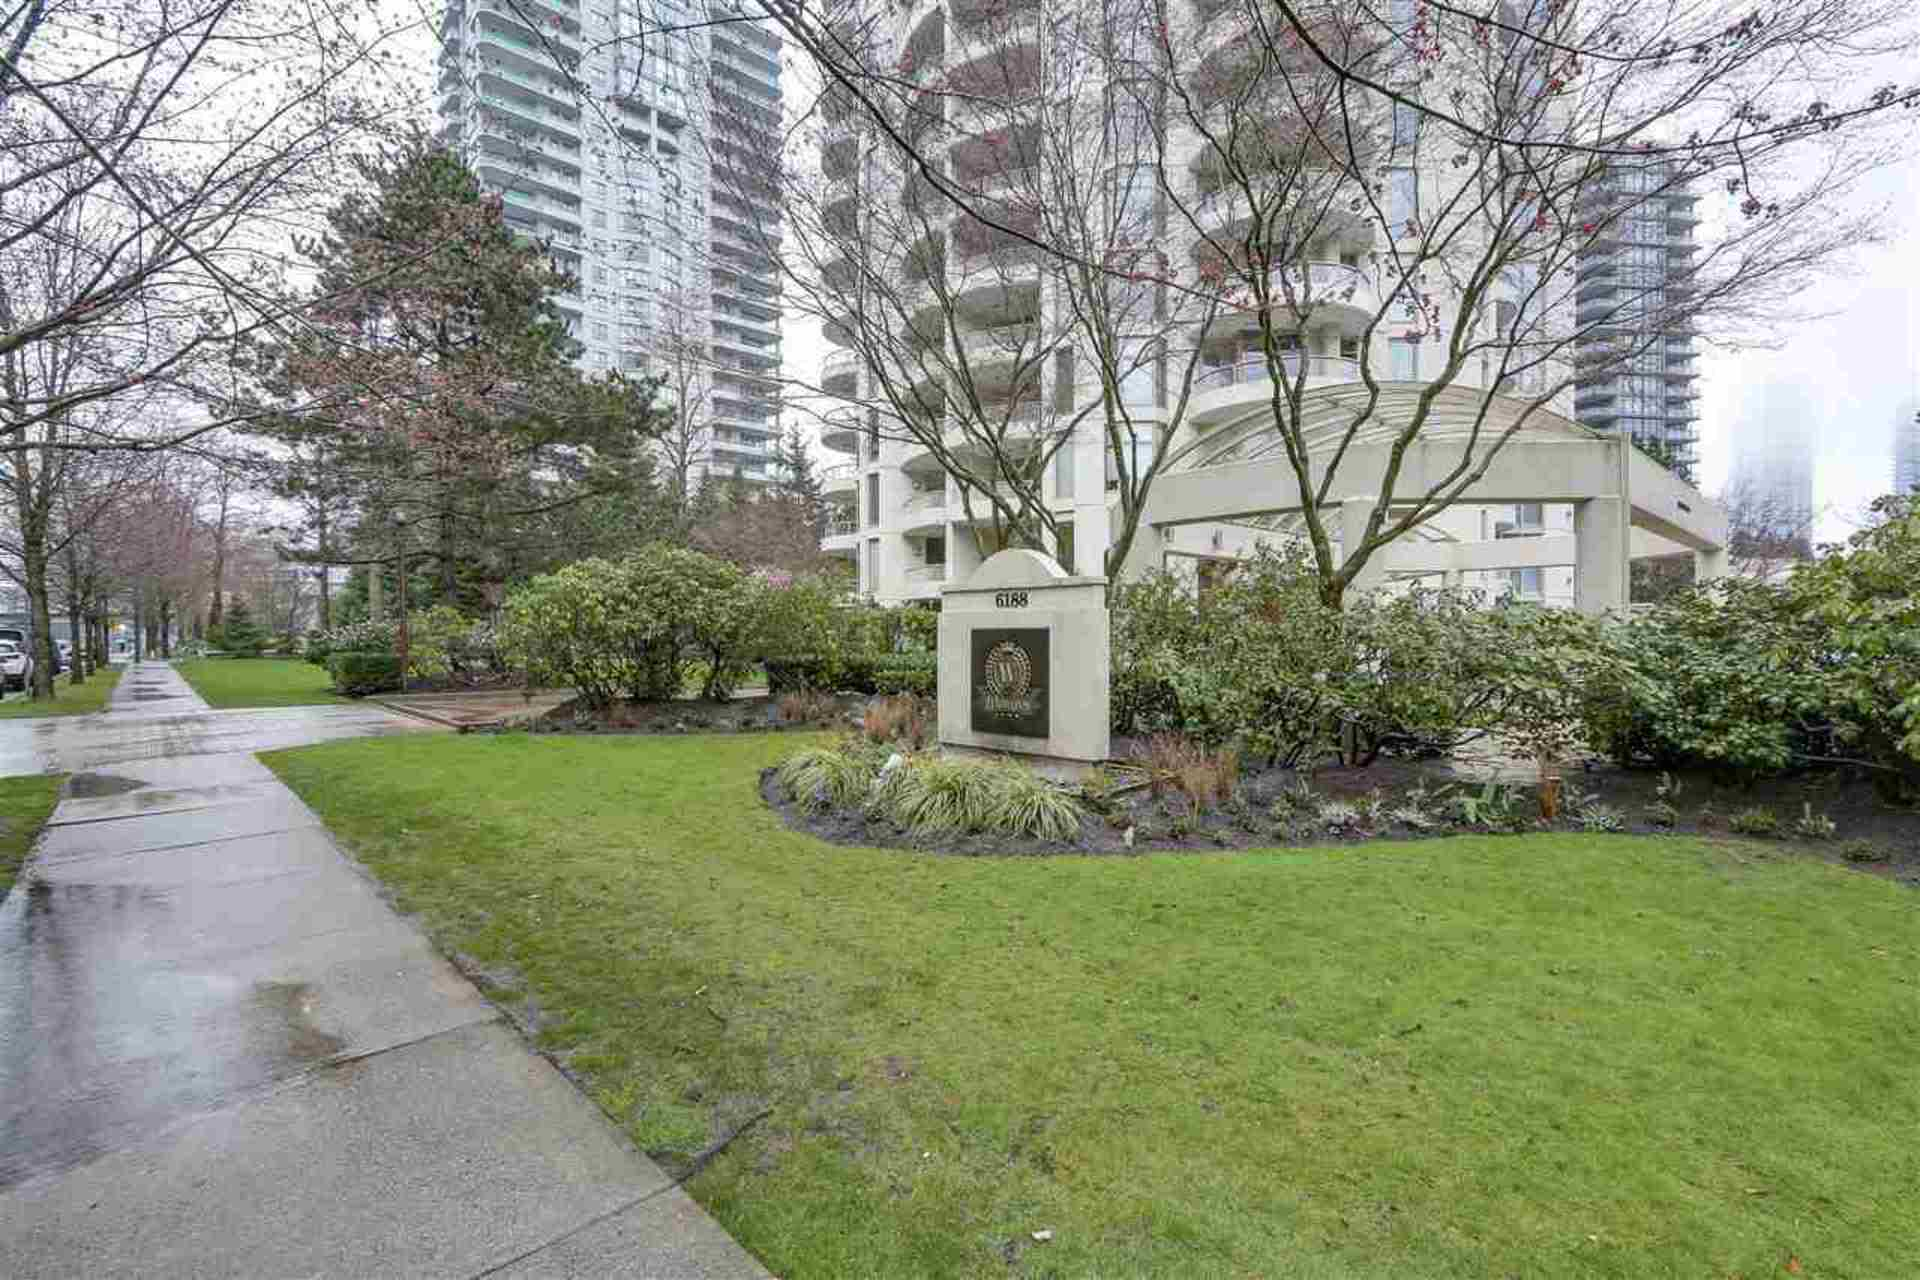 6188-patterson-avenue-metrotown-burnaby-south-01 at 802 - 6188 Patterson Avenue, Metrotown, Burnaby South